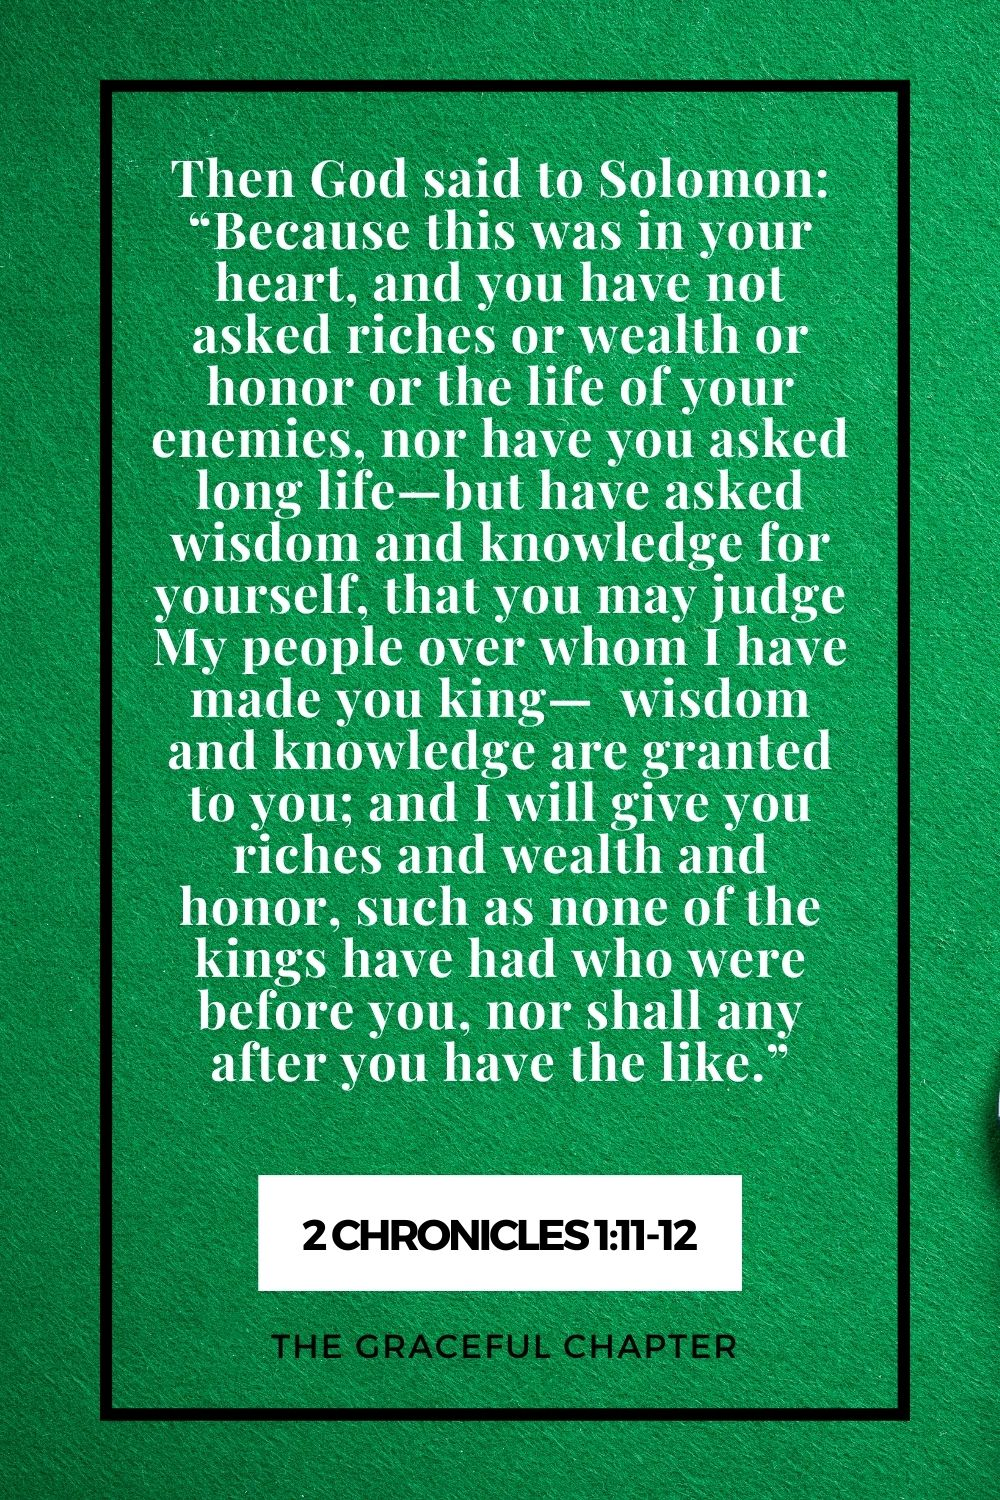 """Then God said to Solombut have asked wisdom and knowledge for yourself, that you may judge My people over whom I have made you king  wisdom and knowledge are granted to you; and I will give you riches and wealth and honor, such as none of the kings have had who were before you, nor shall any after you have the like."""" 2 Chronicles 1:11-12on: """"Because this was in your heart, and you have not asked riches or wealth or honor or the life of your enemies, nor have you asked long life"""